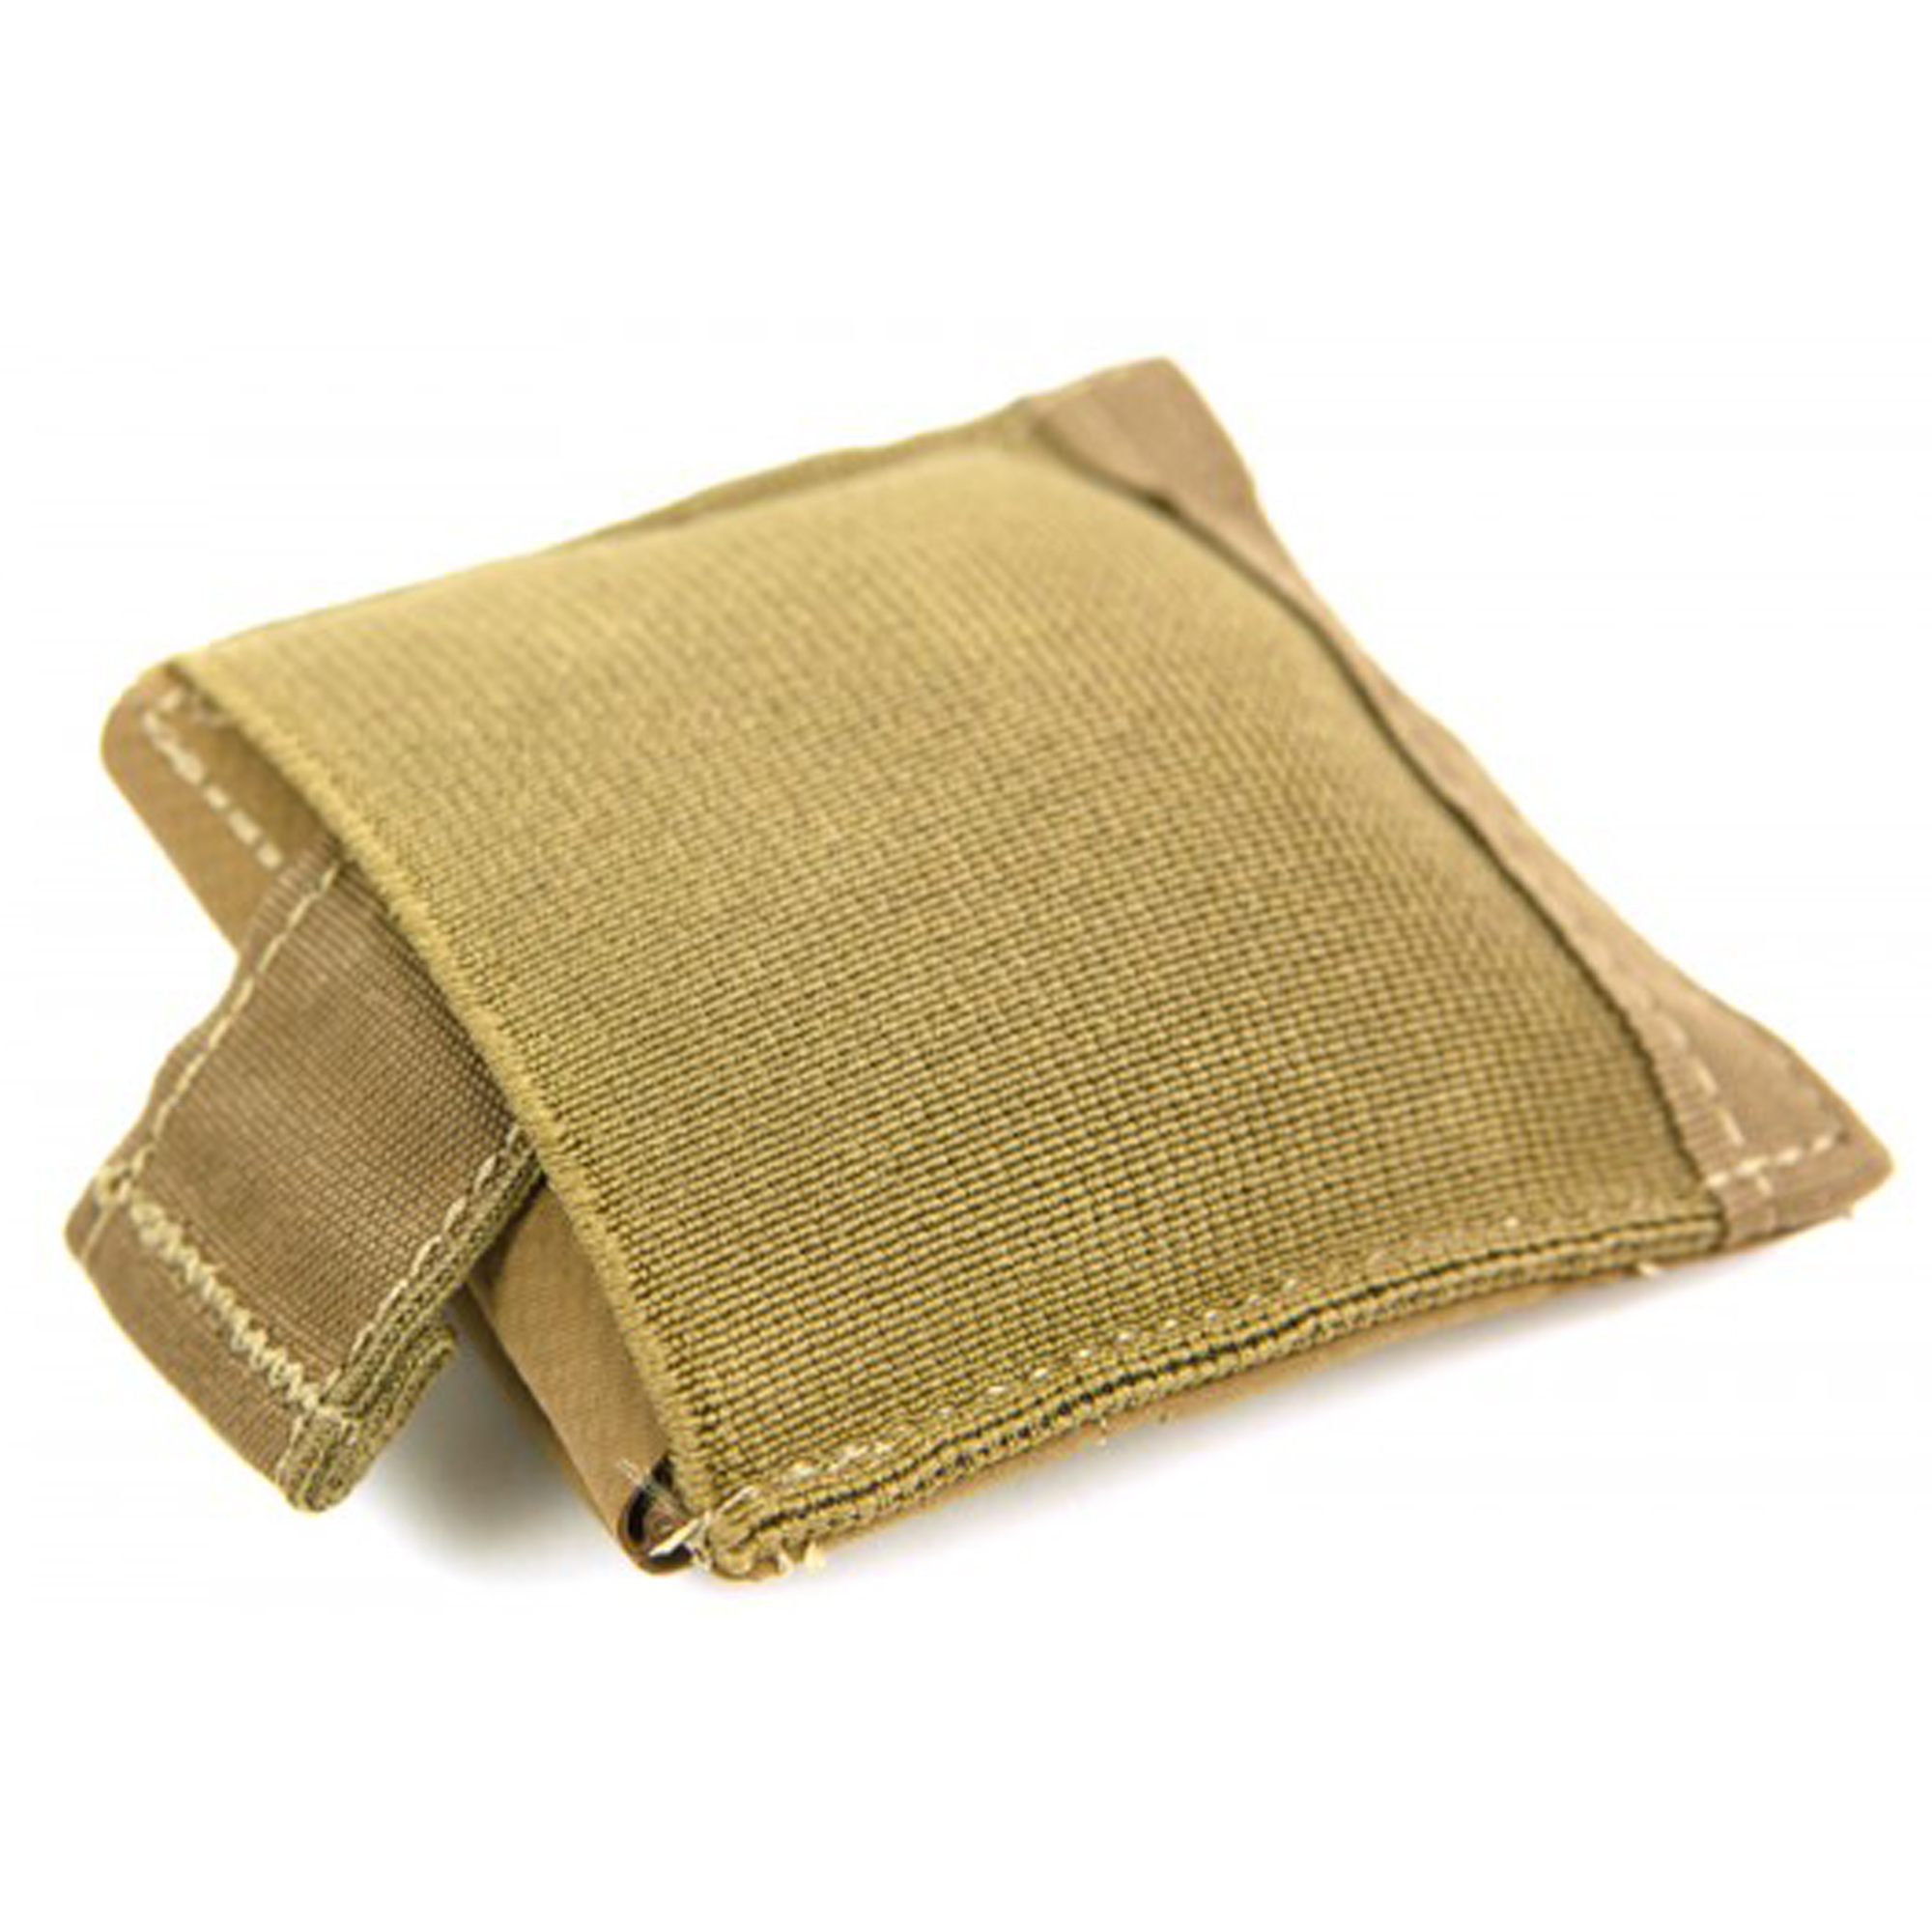 """The Ten-Speed Ultralight Dump Pouch redefines dump pouches. Extremely compact"""" only taking up a 2 x 2 MOLLE field; the bag portion stays folded under Ten-Speed(R) elastic when not in use. When needed"""" a simple pull on the bottom tab deploys a bag big enough to hold 10 M4 magazines. The stowed pouch design eliminates bulky bags flopping around posing as a snag hazard and is small enough to be mounted behind larger pouches or on duty belts. A cinch cord at the top of the bag can be closed with one hand to secure the contents of the Dump Pouch. The Ten-Speed Ultralight Dump Pouch functions great as a traditional magazine dump pouch"""" temporary supplemental pouch for breaching charges"""" provisions"""" SSE items"""" trash"""" spent casings"""" or extra water bottles. The rip stop nylon bag can be used for foraging for food or kindling or even work as an emergency water filtration component."""